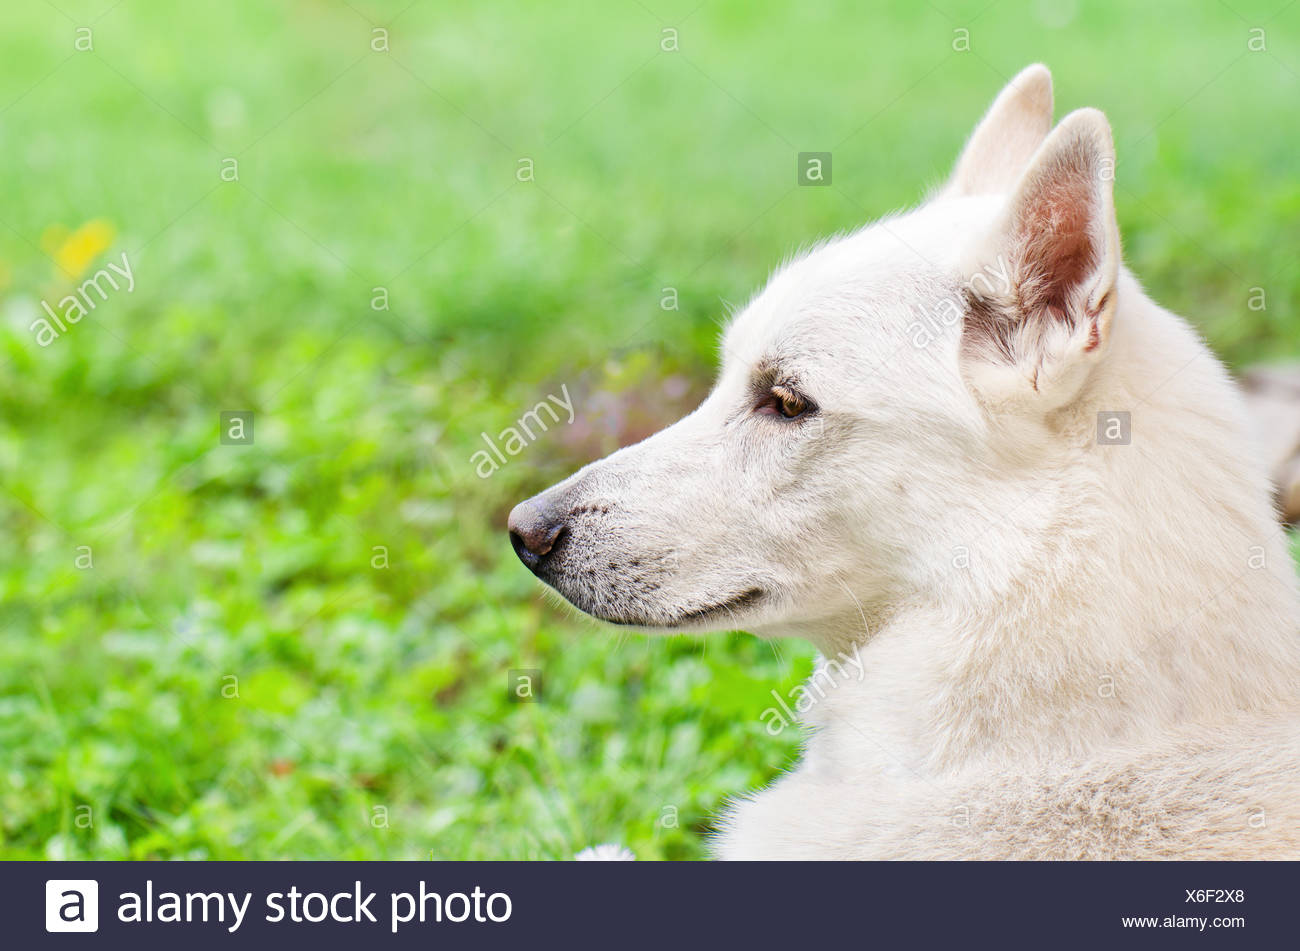 A portrait in profile of a white dog, close-up - Stock Image